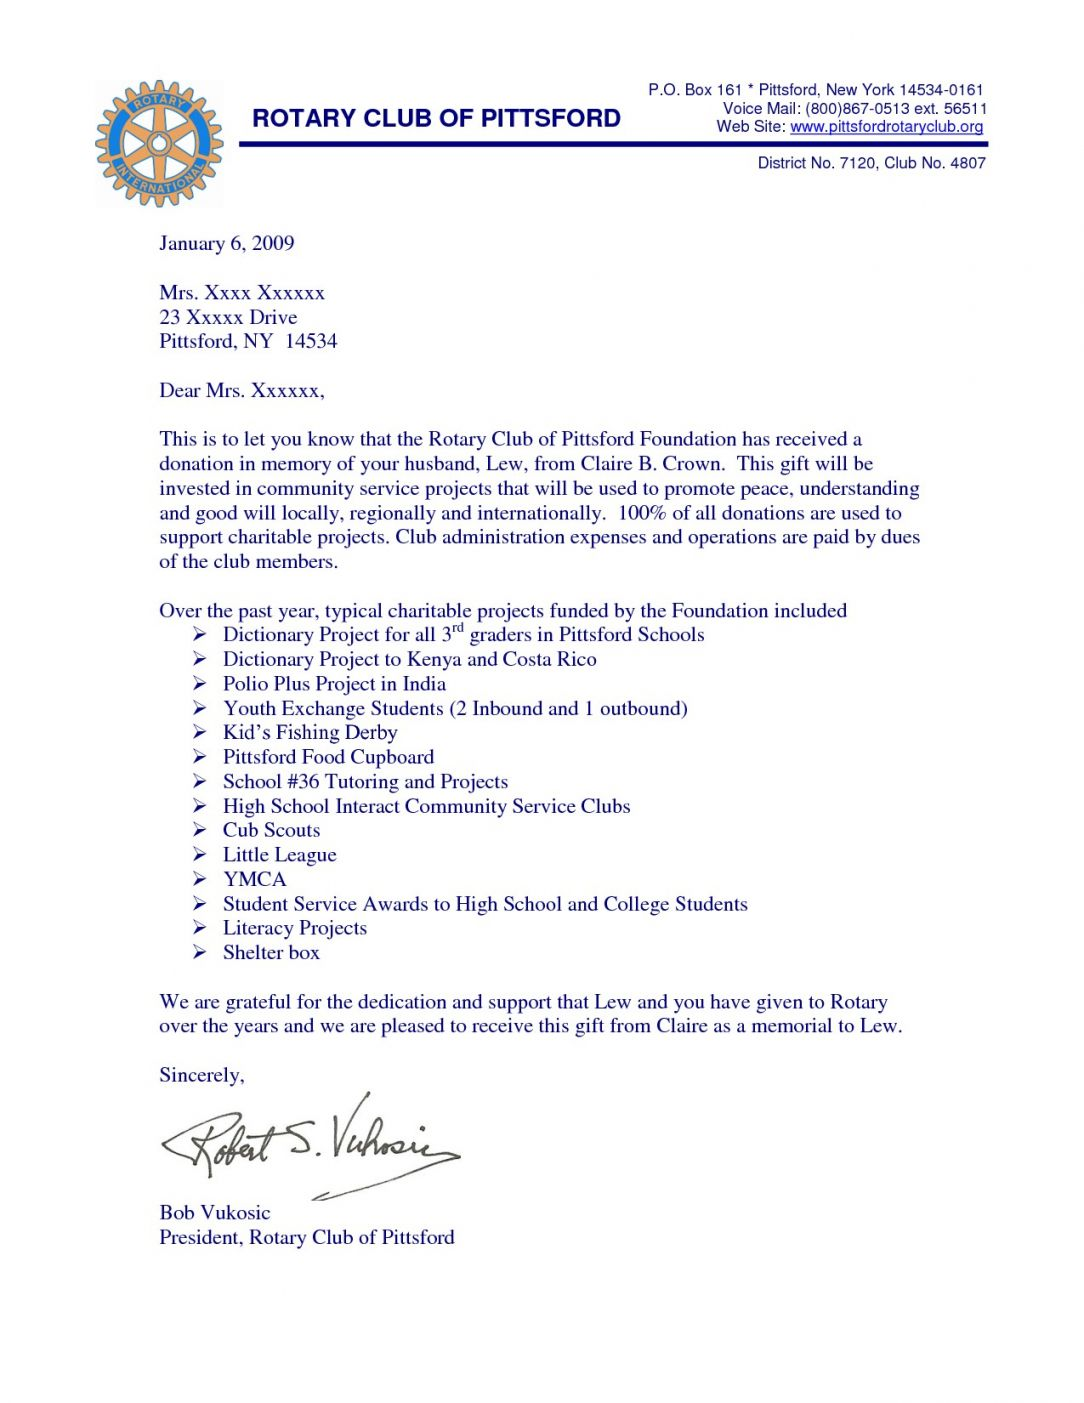 Get Our Image Of Memorial Donation Letter Template Donation Letter Template Sponsorship Letter Donation Letter